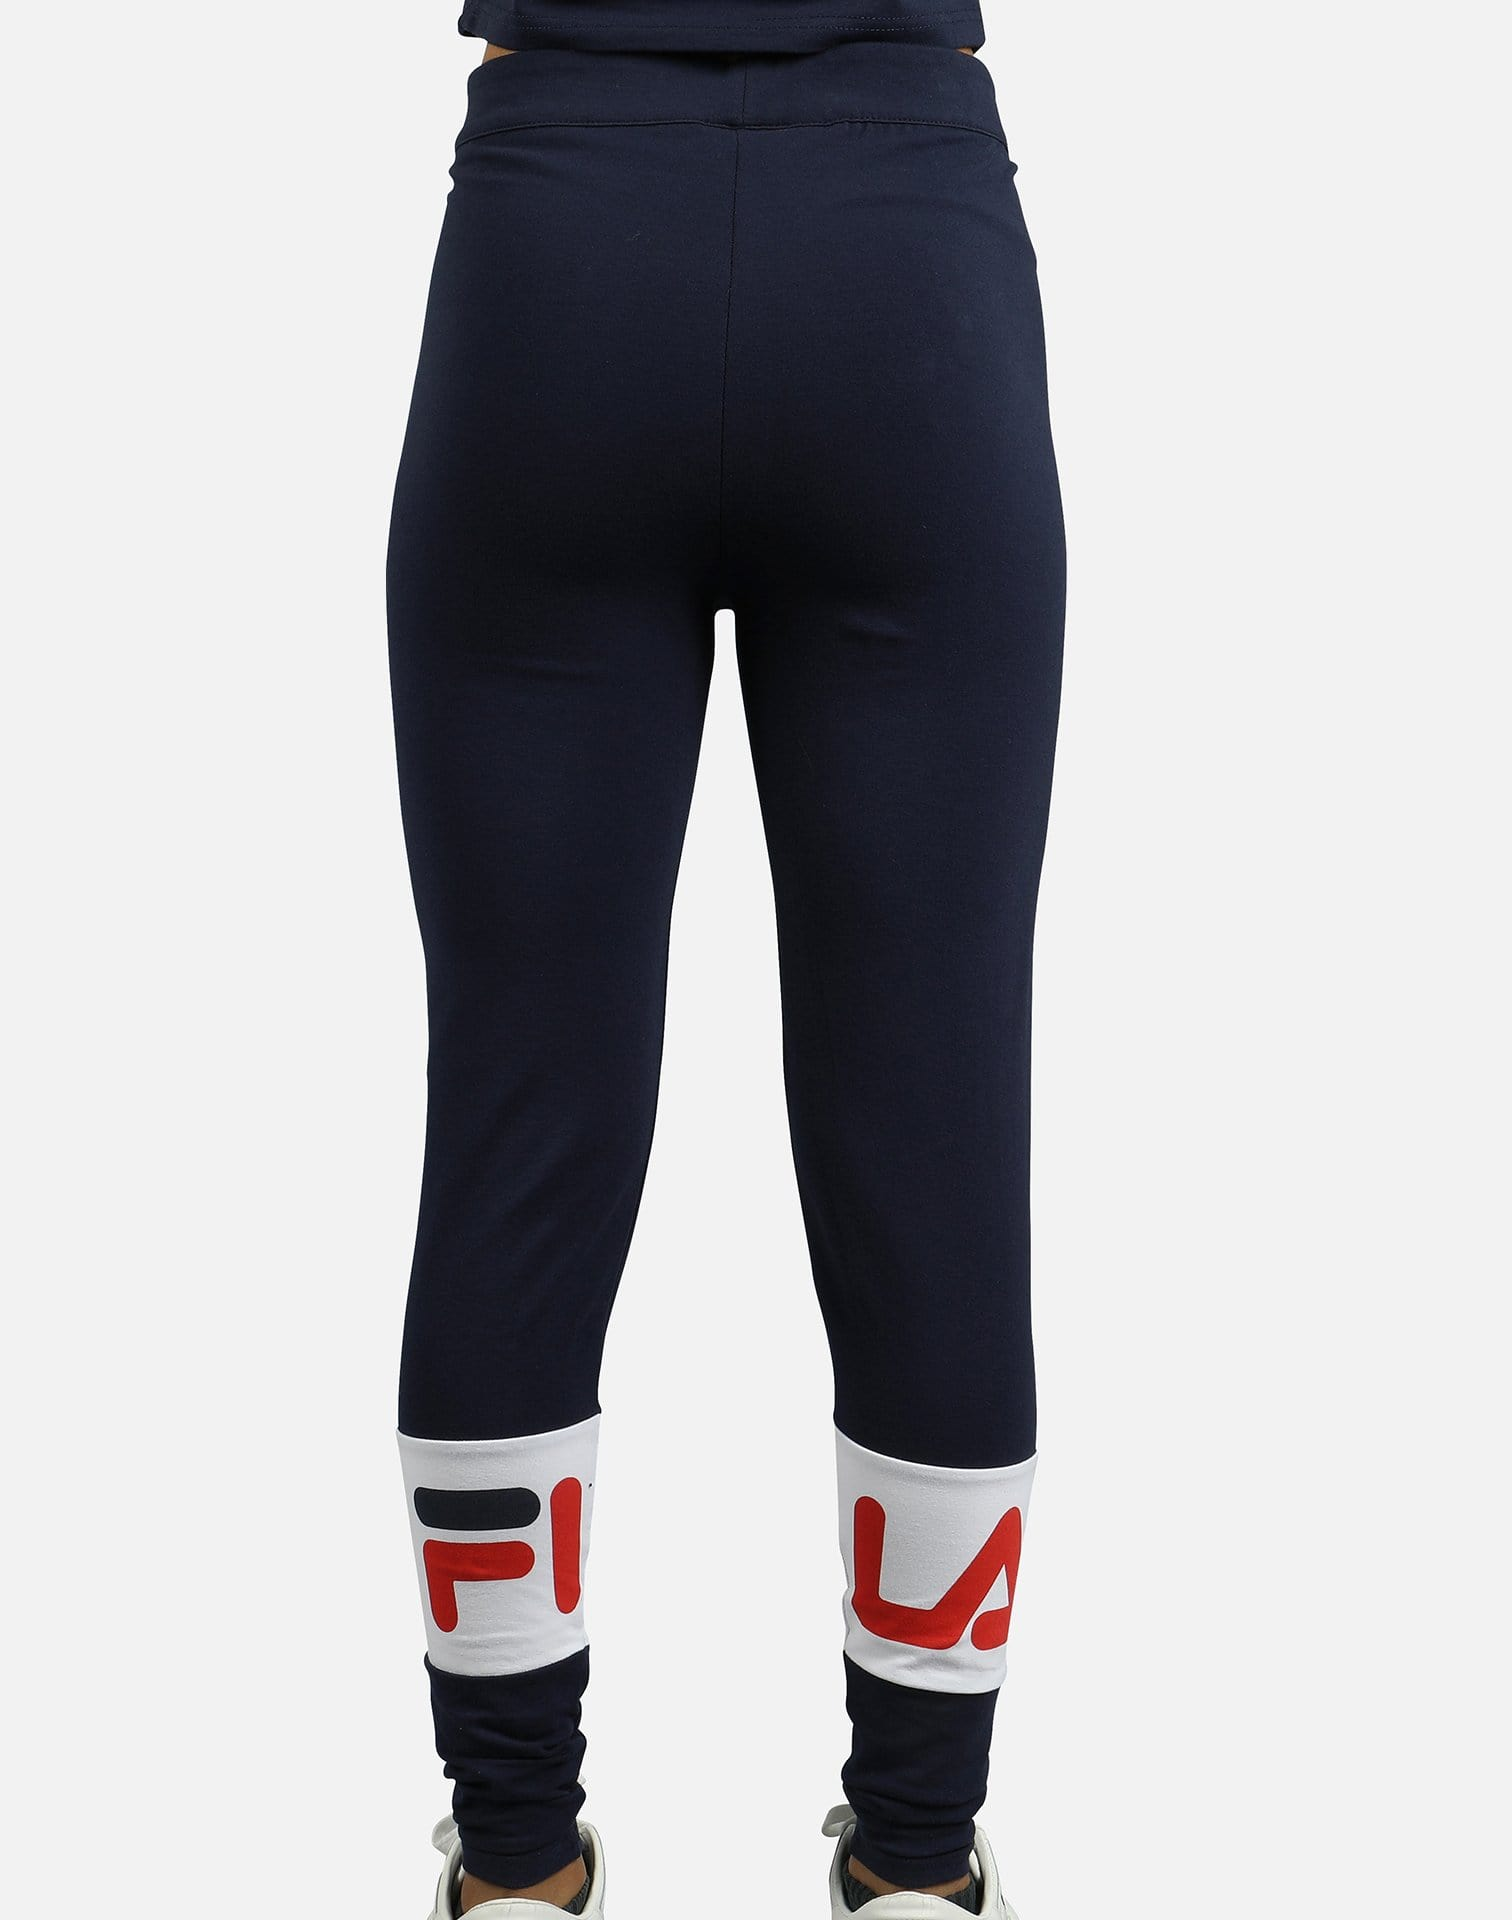 FILA Women's Dina Leggings